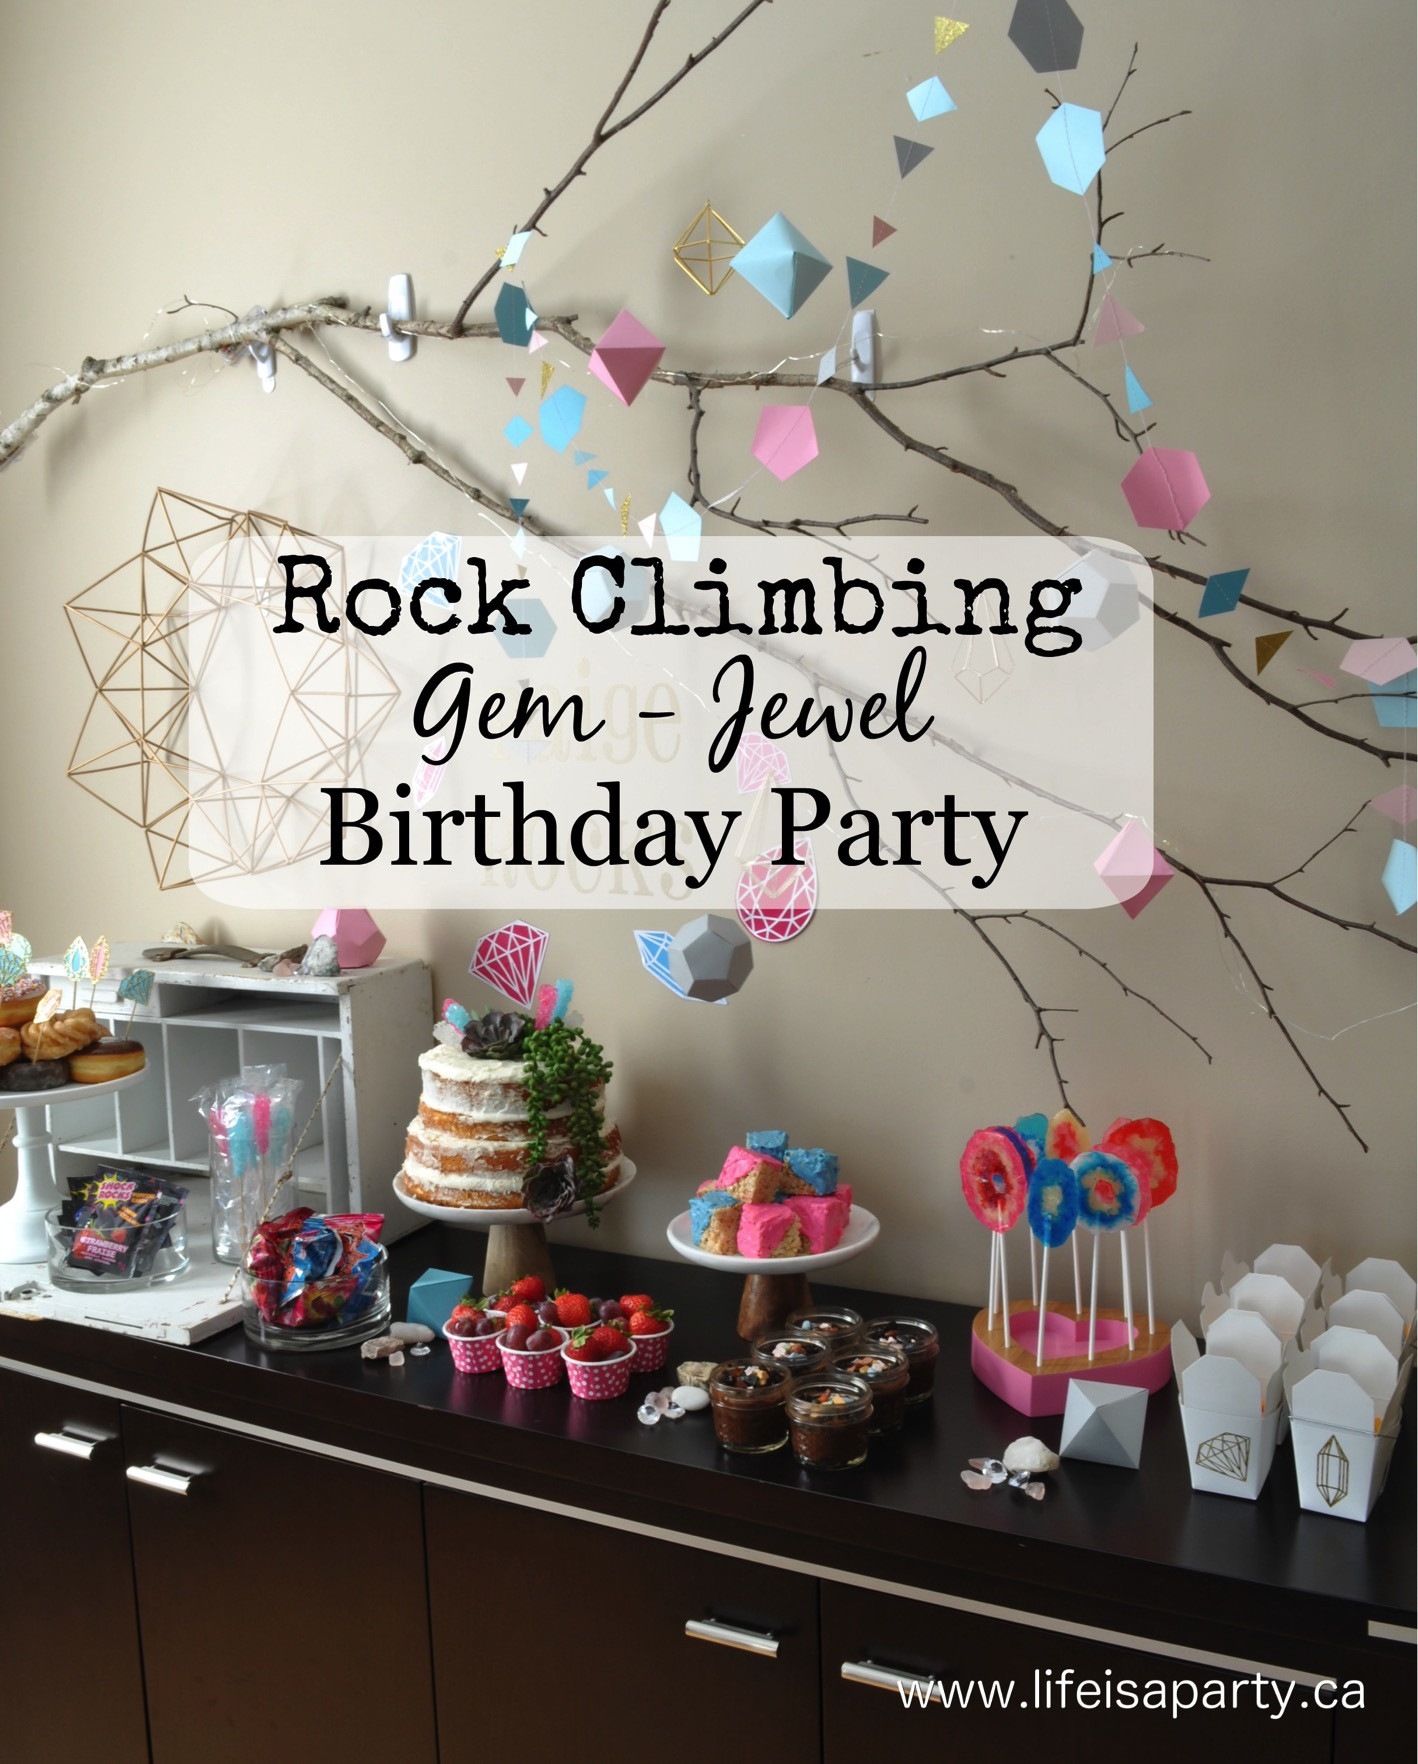 Best ideas about Rock Climbing Birthday Party . Save or Pin Rock Climbing Gem Birthday Party Now.